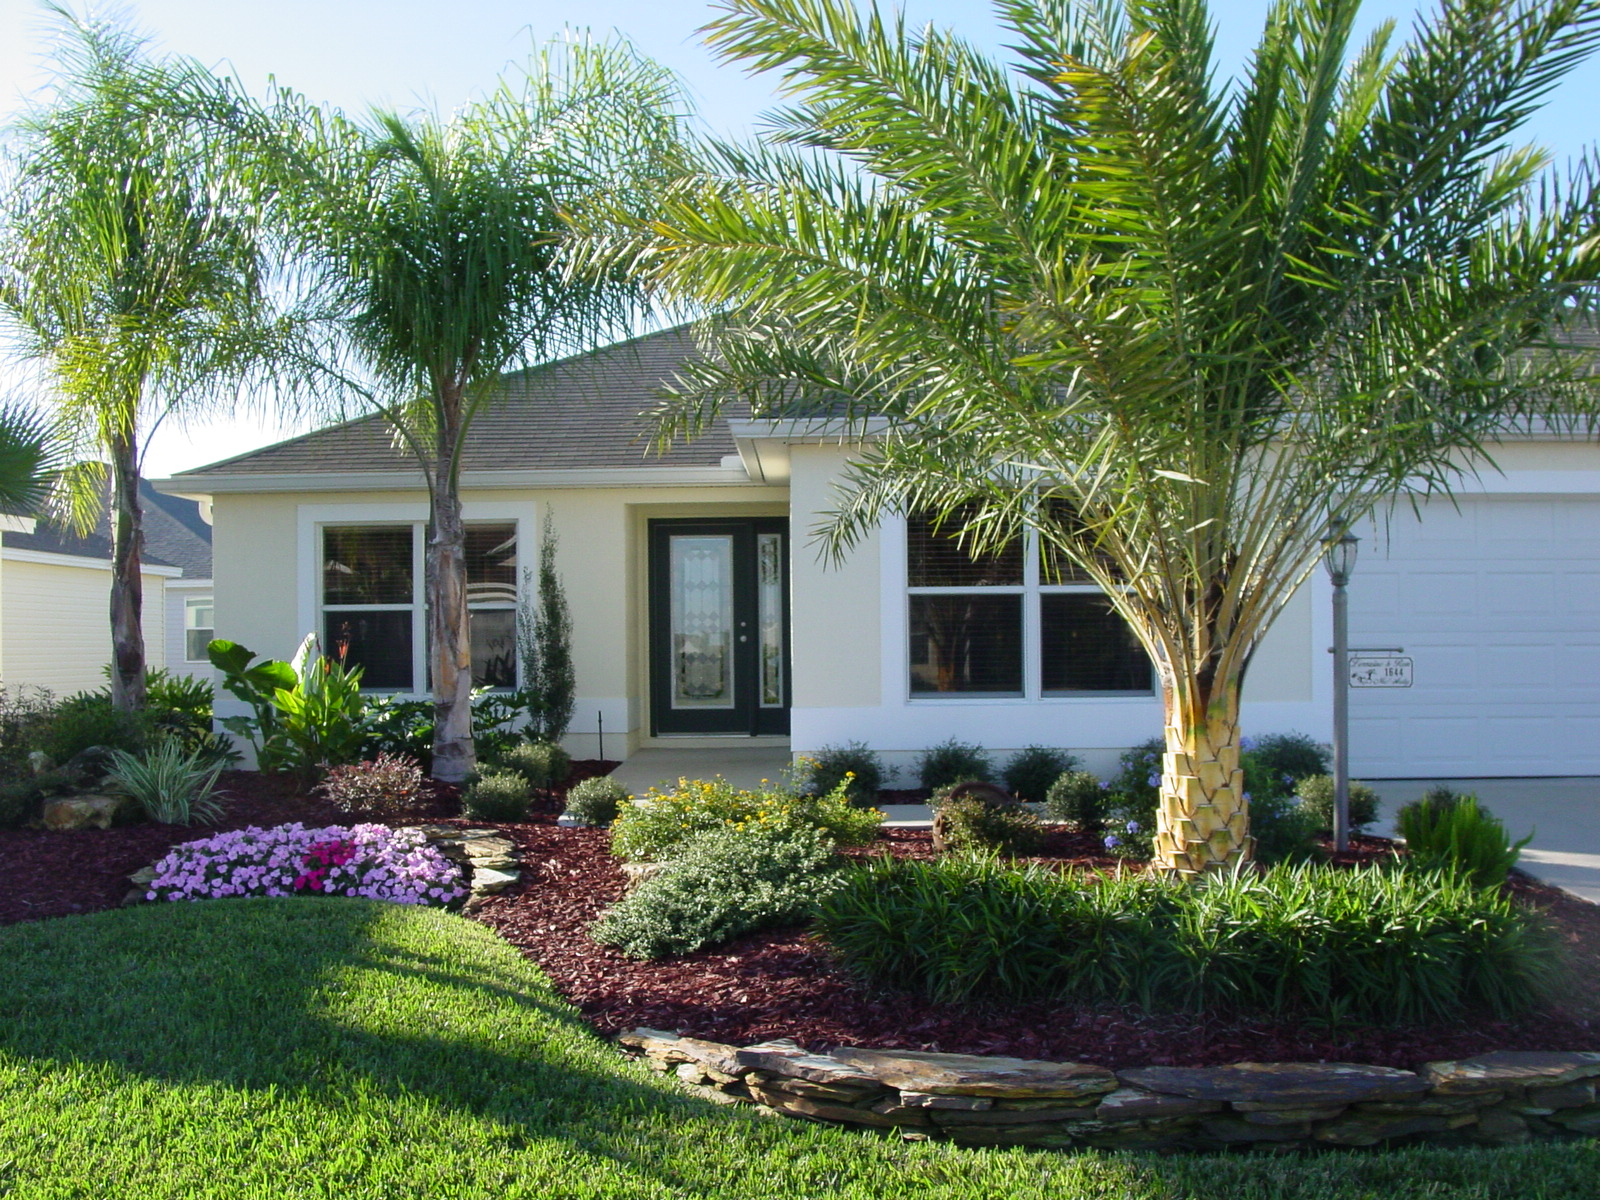 Florida garden landscape ideas photograph rons landscaping for House landscaping ideas